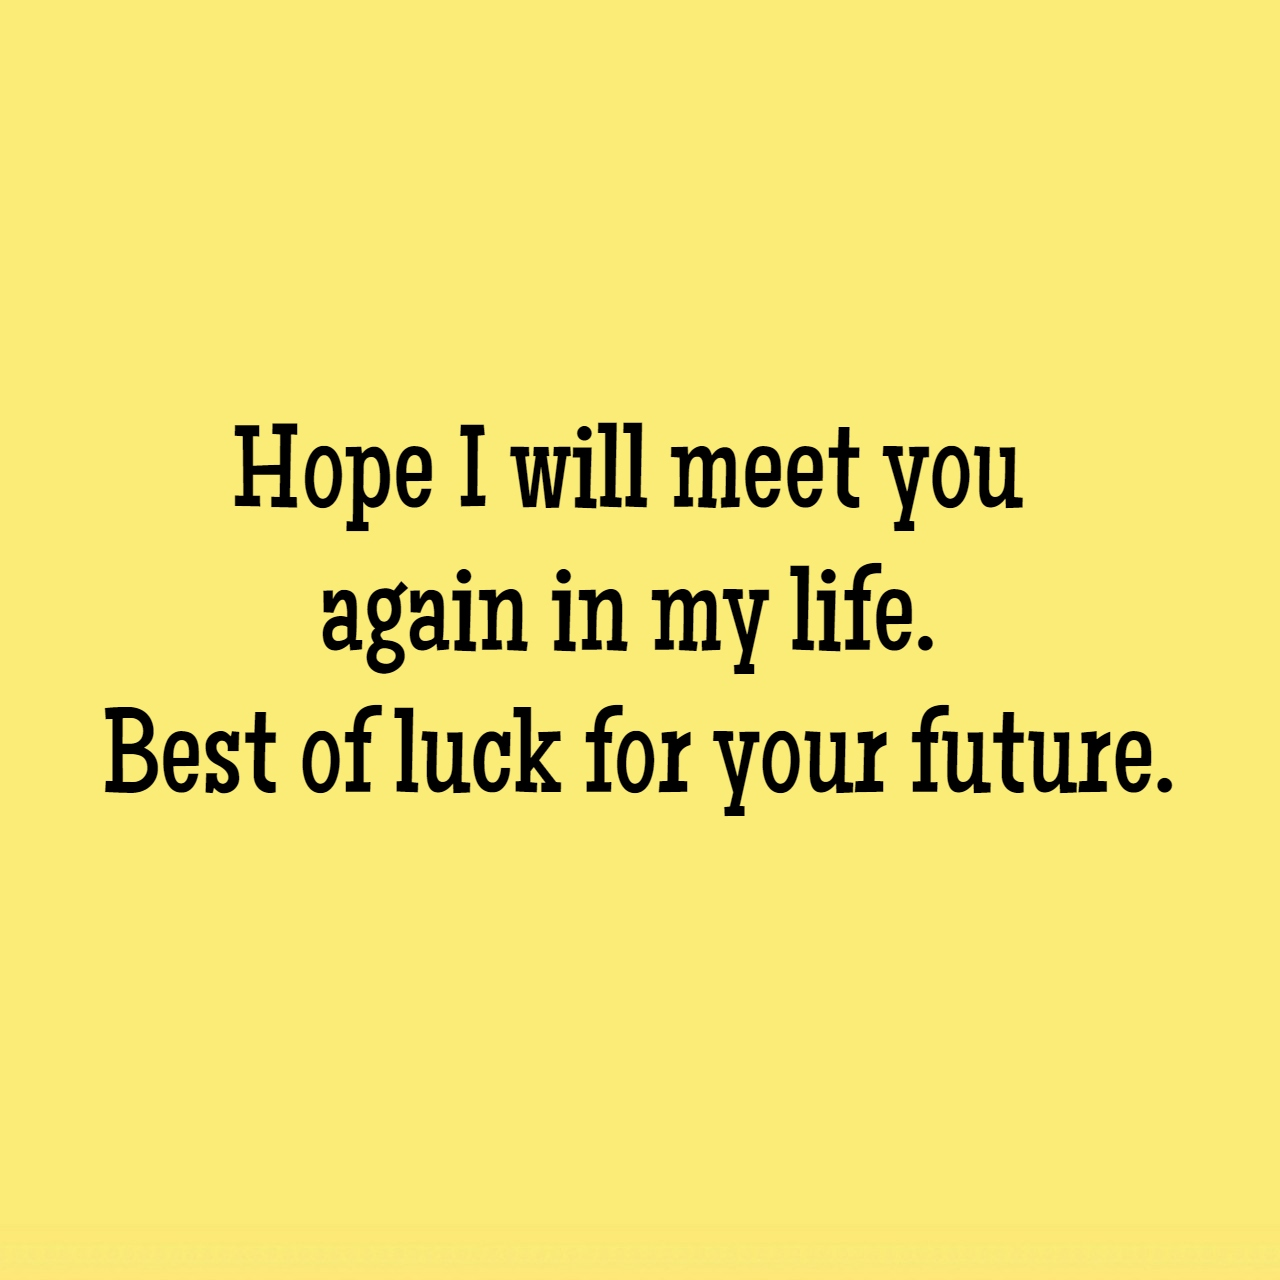 We Wish You Good Luck For Your Future Endeavors